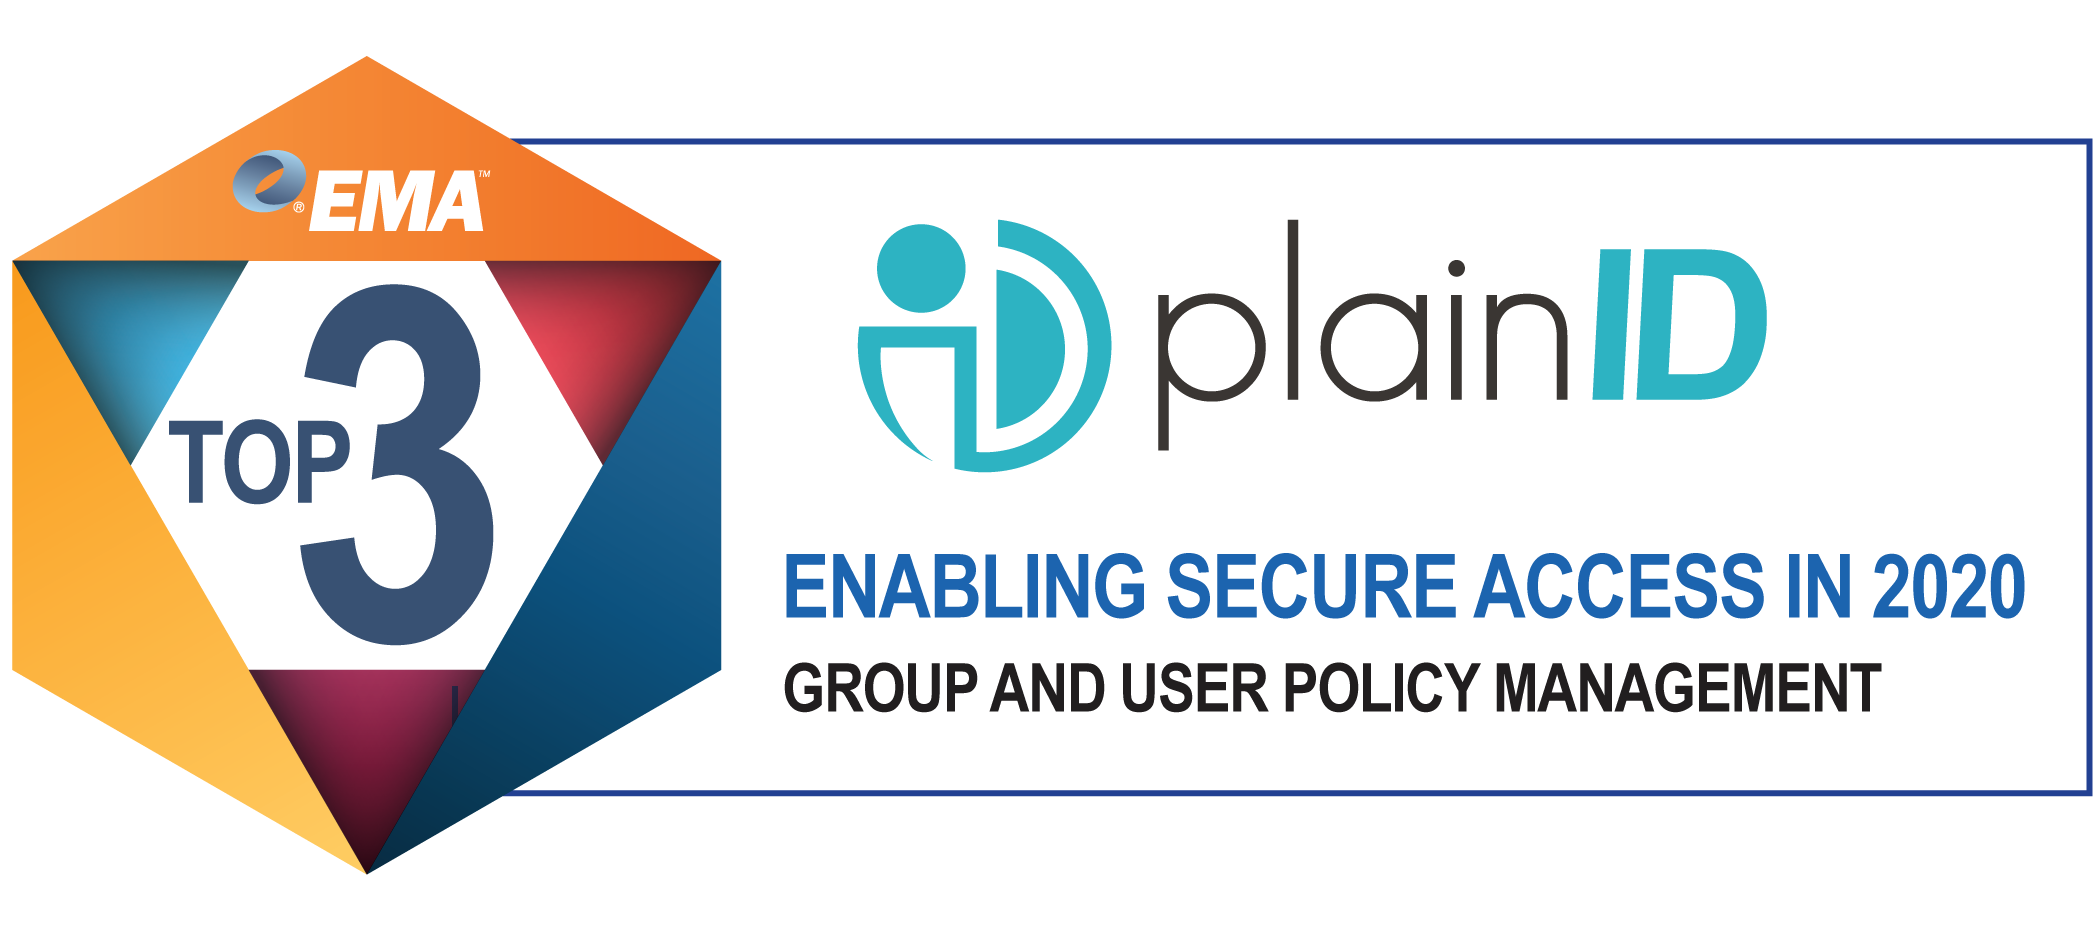 EMA-2020-Top3-Award-EnablingSecureRemoteAccess-PlainID-1